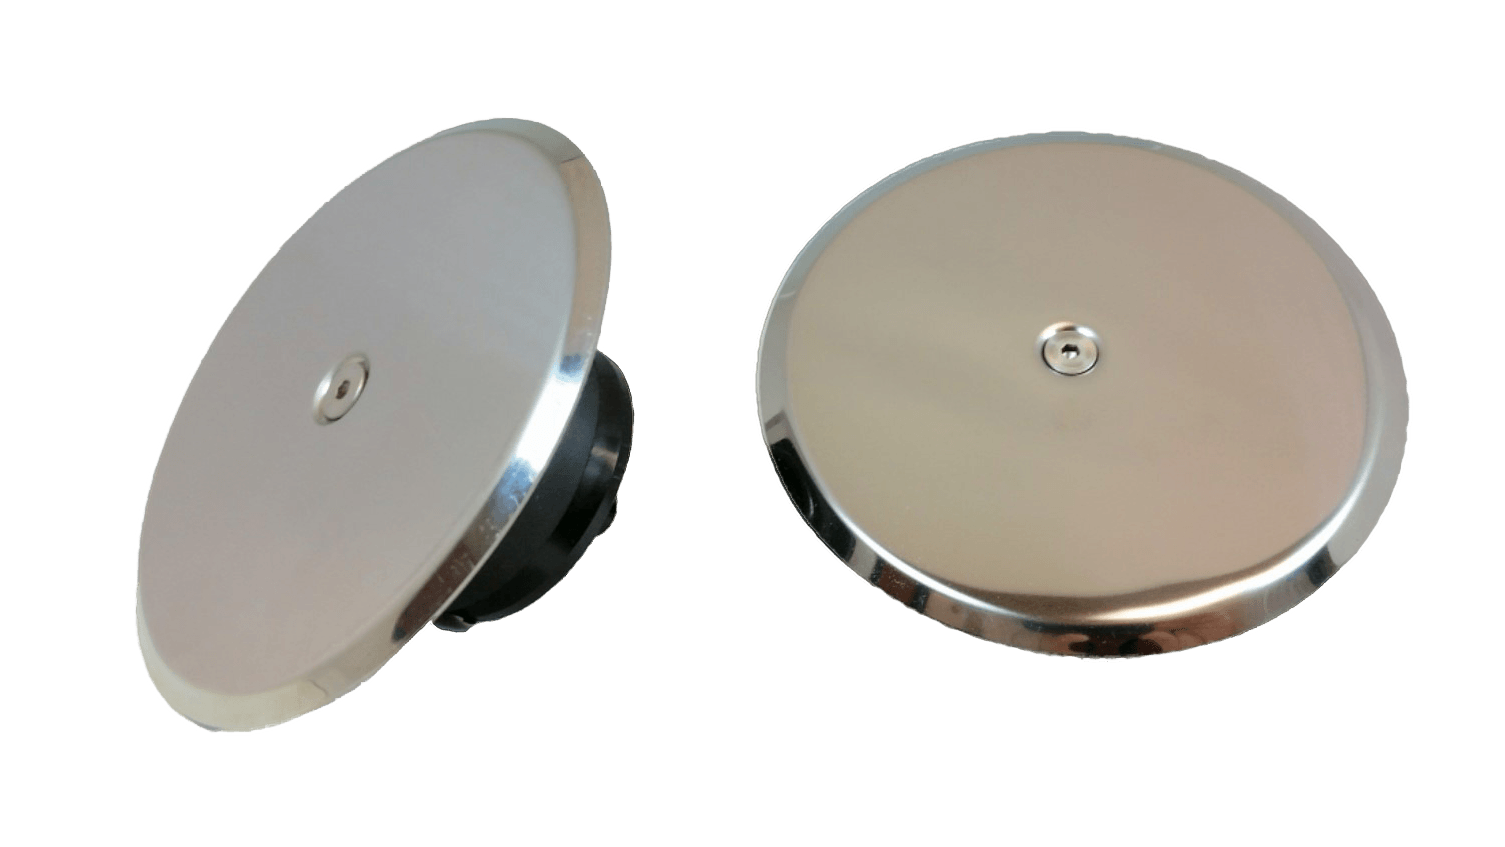 Chrome expansion plugs come with a chrome top, so they look good wherever you put them